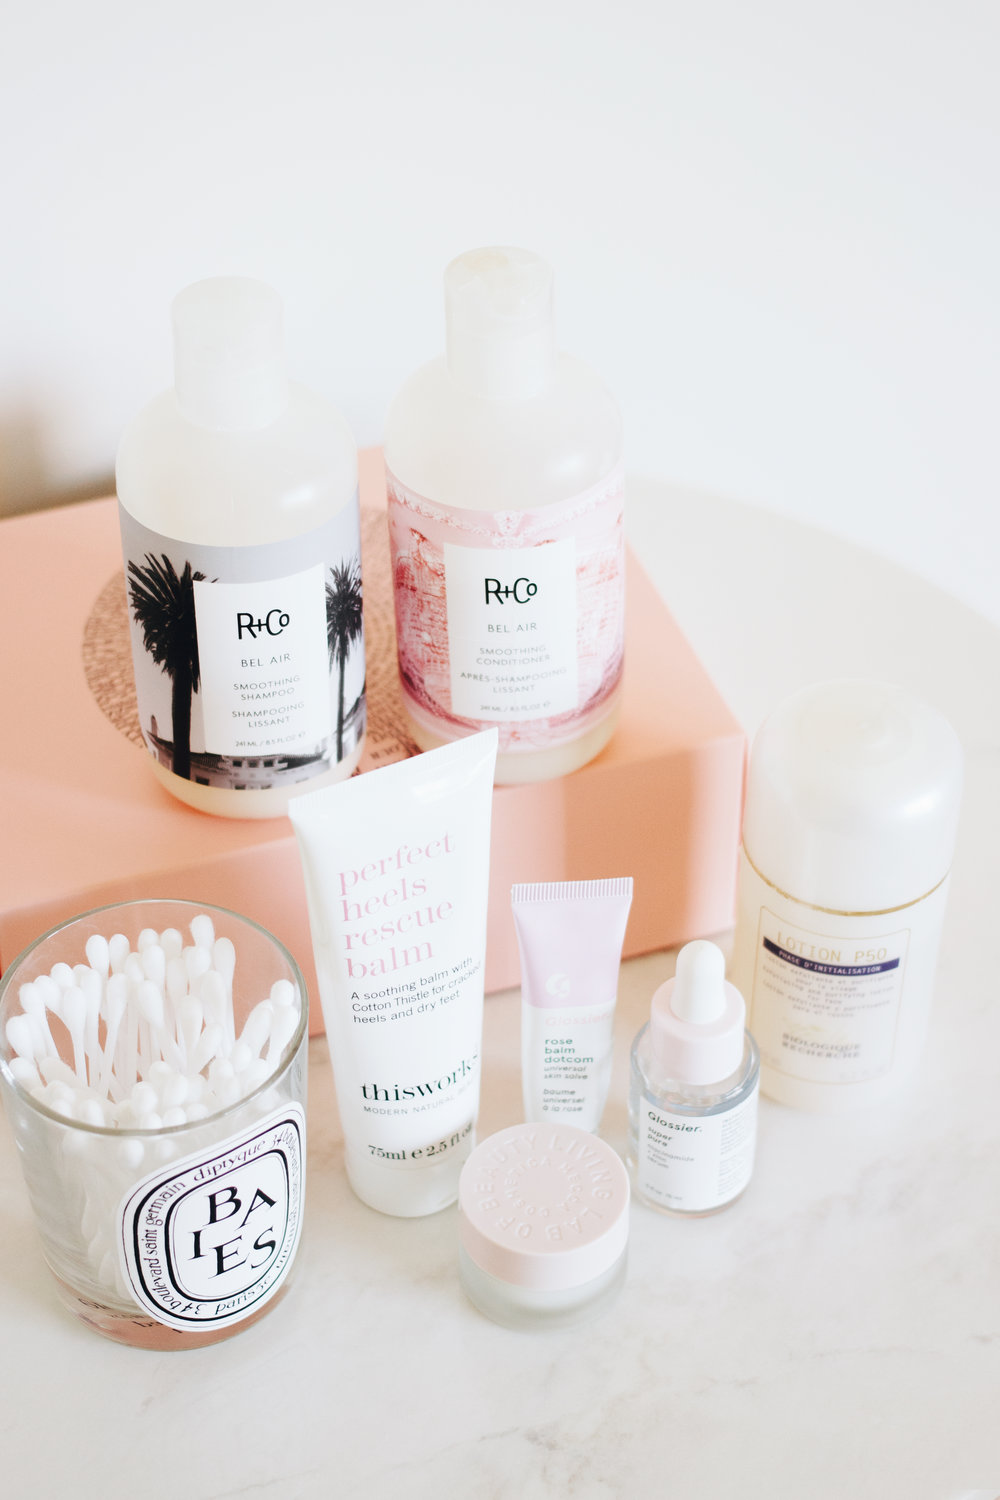 Skincare Toner - I didn't try any new cleansers in 2017, though I did welcome three new toners and I really loved them all. The first toner I tried this year was the Pixi Hydrating Milky Mist, which my lovely friend Jess picked up for me from the US. You can get Pixi in Sephora here in Australia, but while I was living in Melbourne (there are no Sephora stores in Perth), it was never in stock and online is even worse. A beauty blogger favourite, this mist is lightweight, feels super refreshing once it hits the skin and contains a host of wonderful ingredients including hyaluronic acid, provitamin A (an antioxidant, not a retinoid derived from vitamin A) and linoleic acid (reduces redness and soothes irritation). Once I've finished this bottle up, I'm keen to give the Saturday Skin Daily Dew Hydrating Essence Mist a go, but it's definitely a contender for a repurchase one day.I didn't get the chance to talk about these next two toners this year, but I've got a post dedicated to toner coming in the near future, so rest assured, I'll delve into further detail there. For now, I hope my quick-fire reviews will suffice!